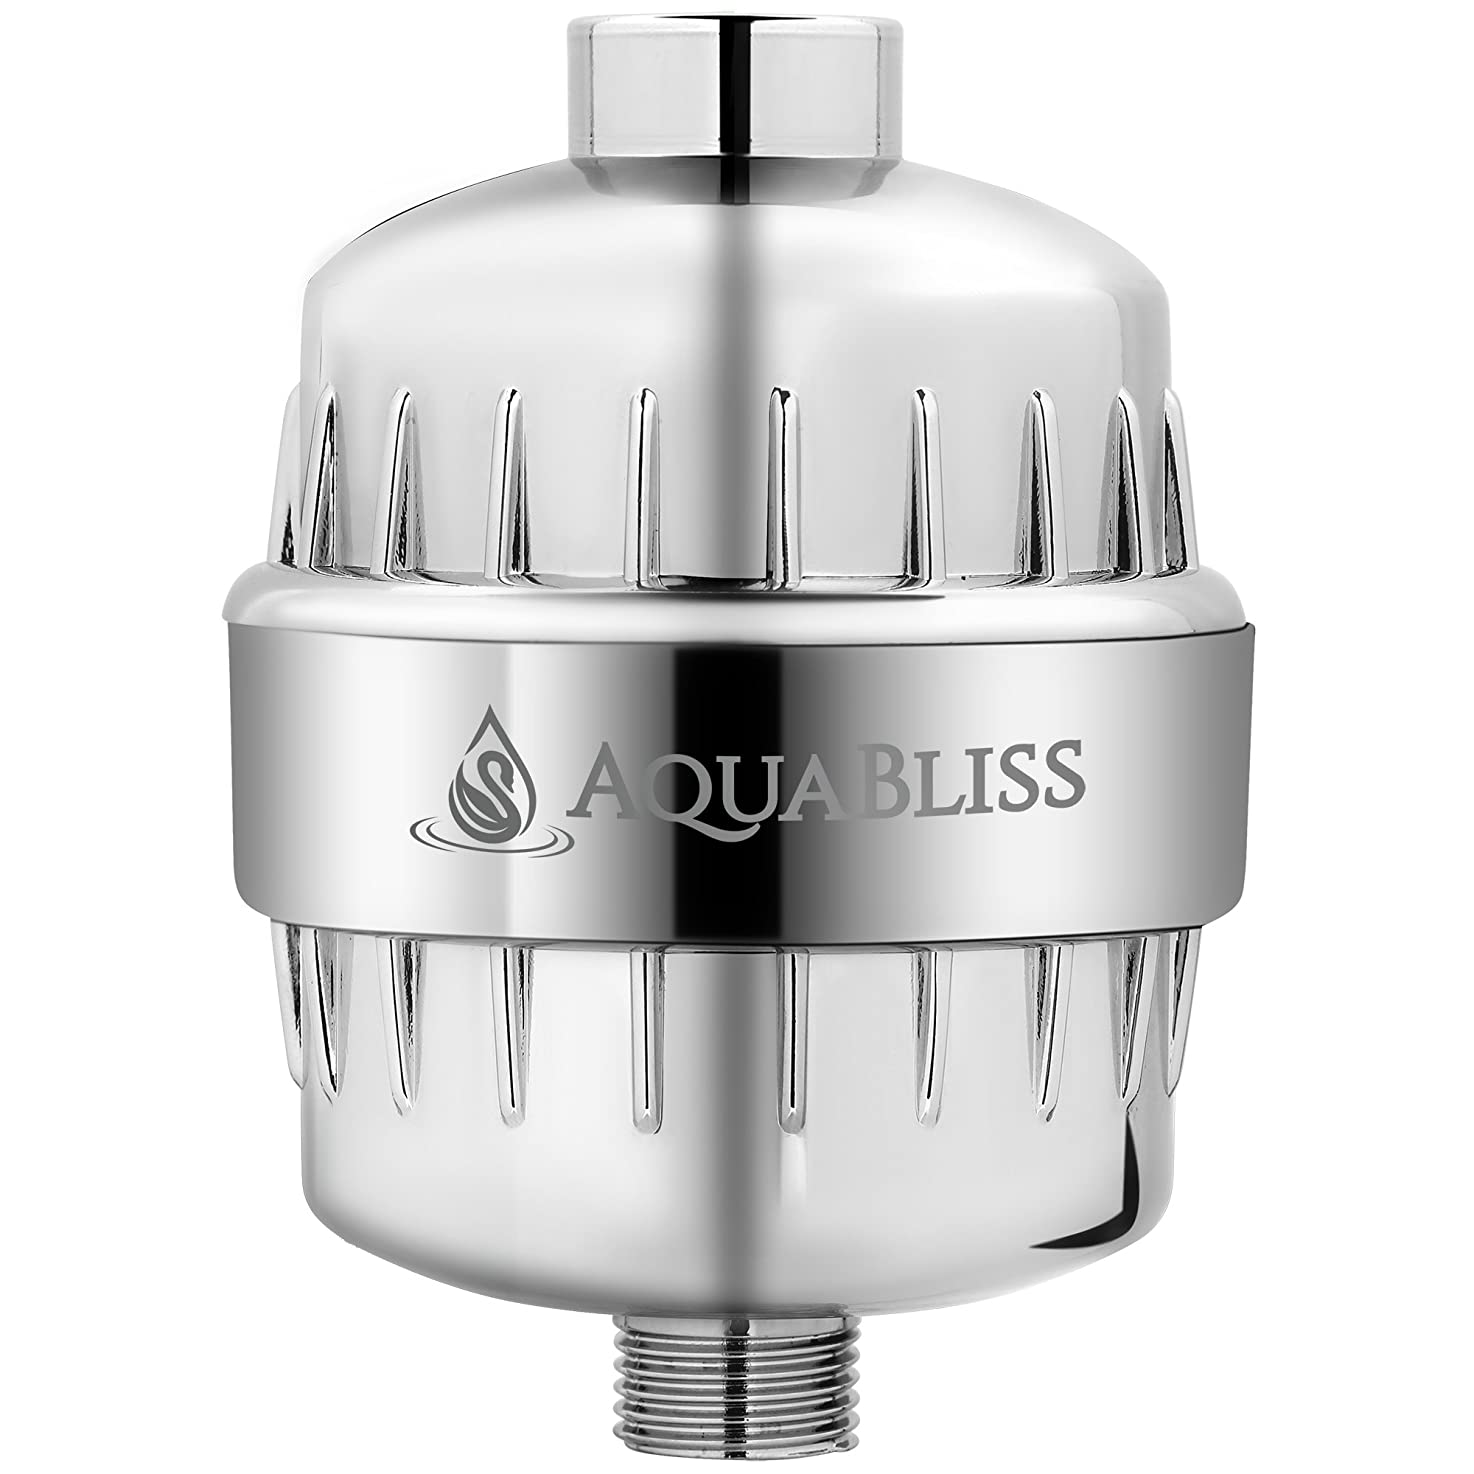 AquaBliss High Output 12-Stage Shower Filter - Reduces Dry Itchy Skin, Dandruff, Eczema, and Dramatically Improves The Condition of Your Skin, Hair and Nails - Chrome (SF100) xjvljvzrsevcp8